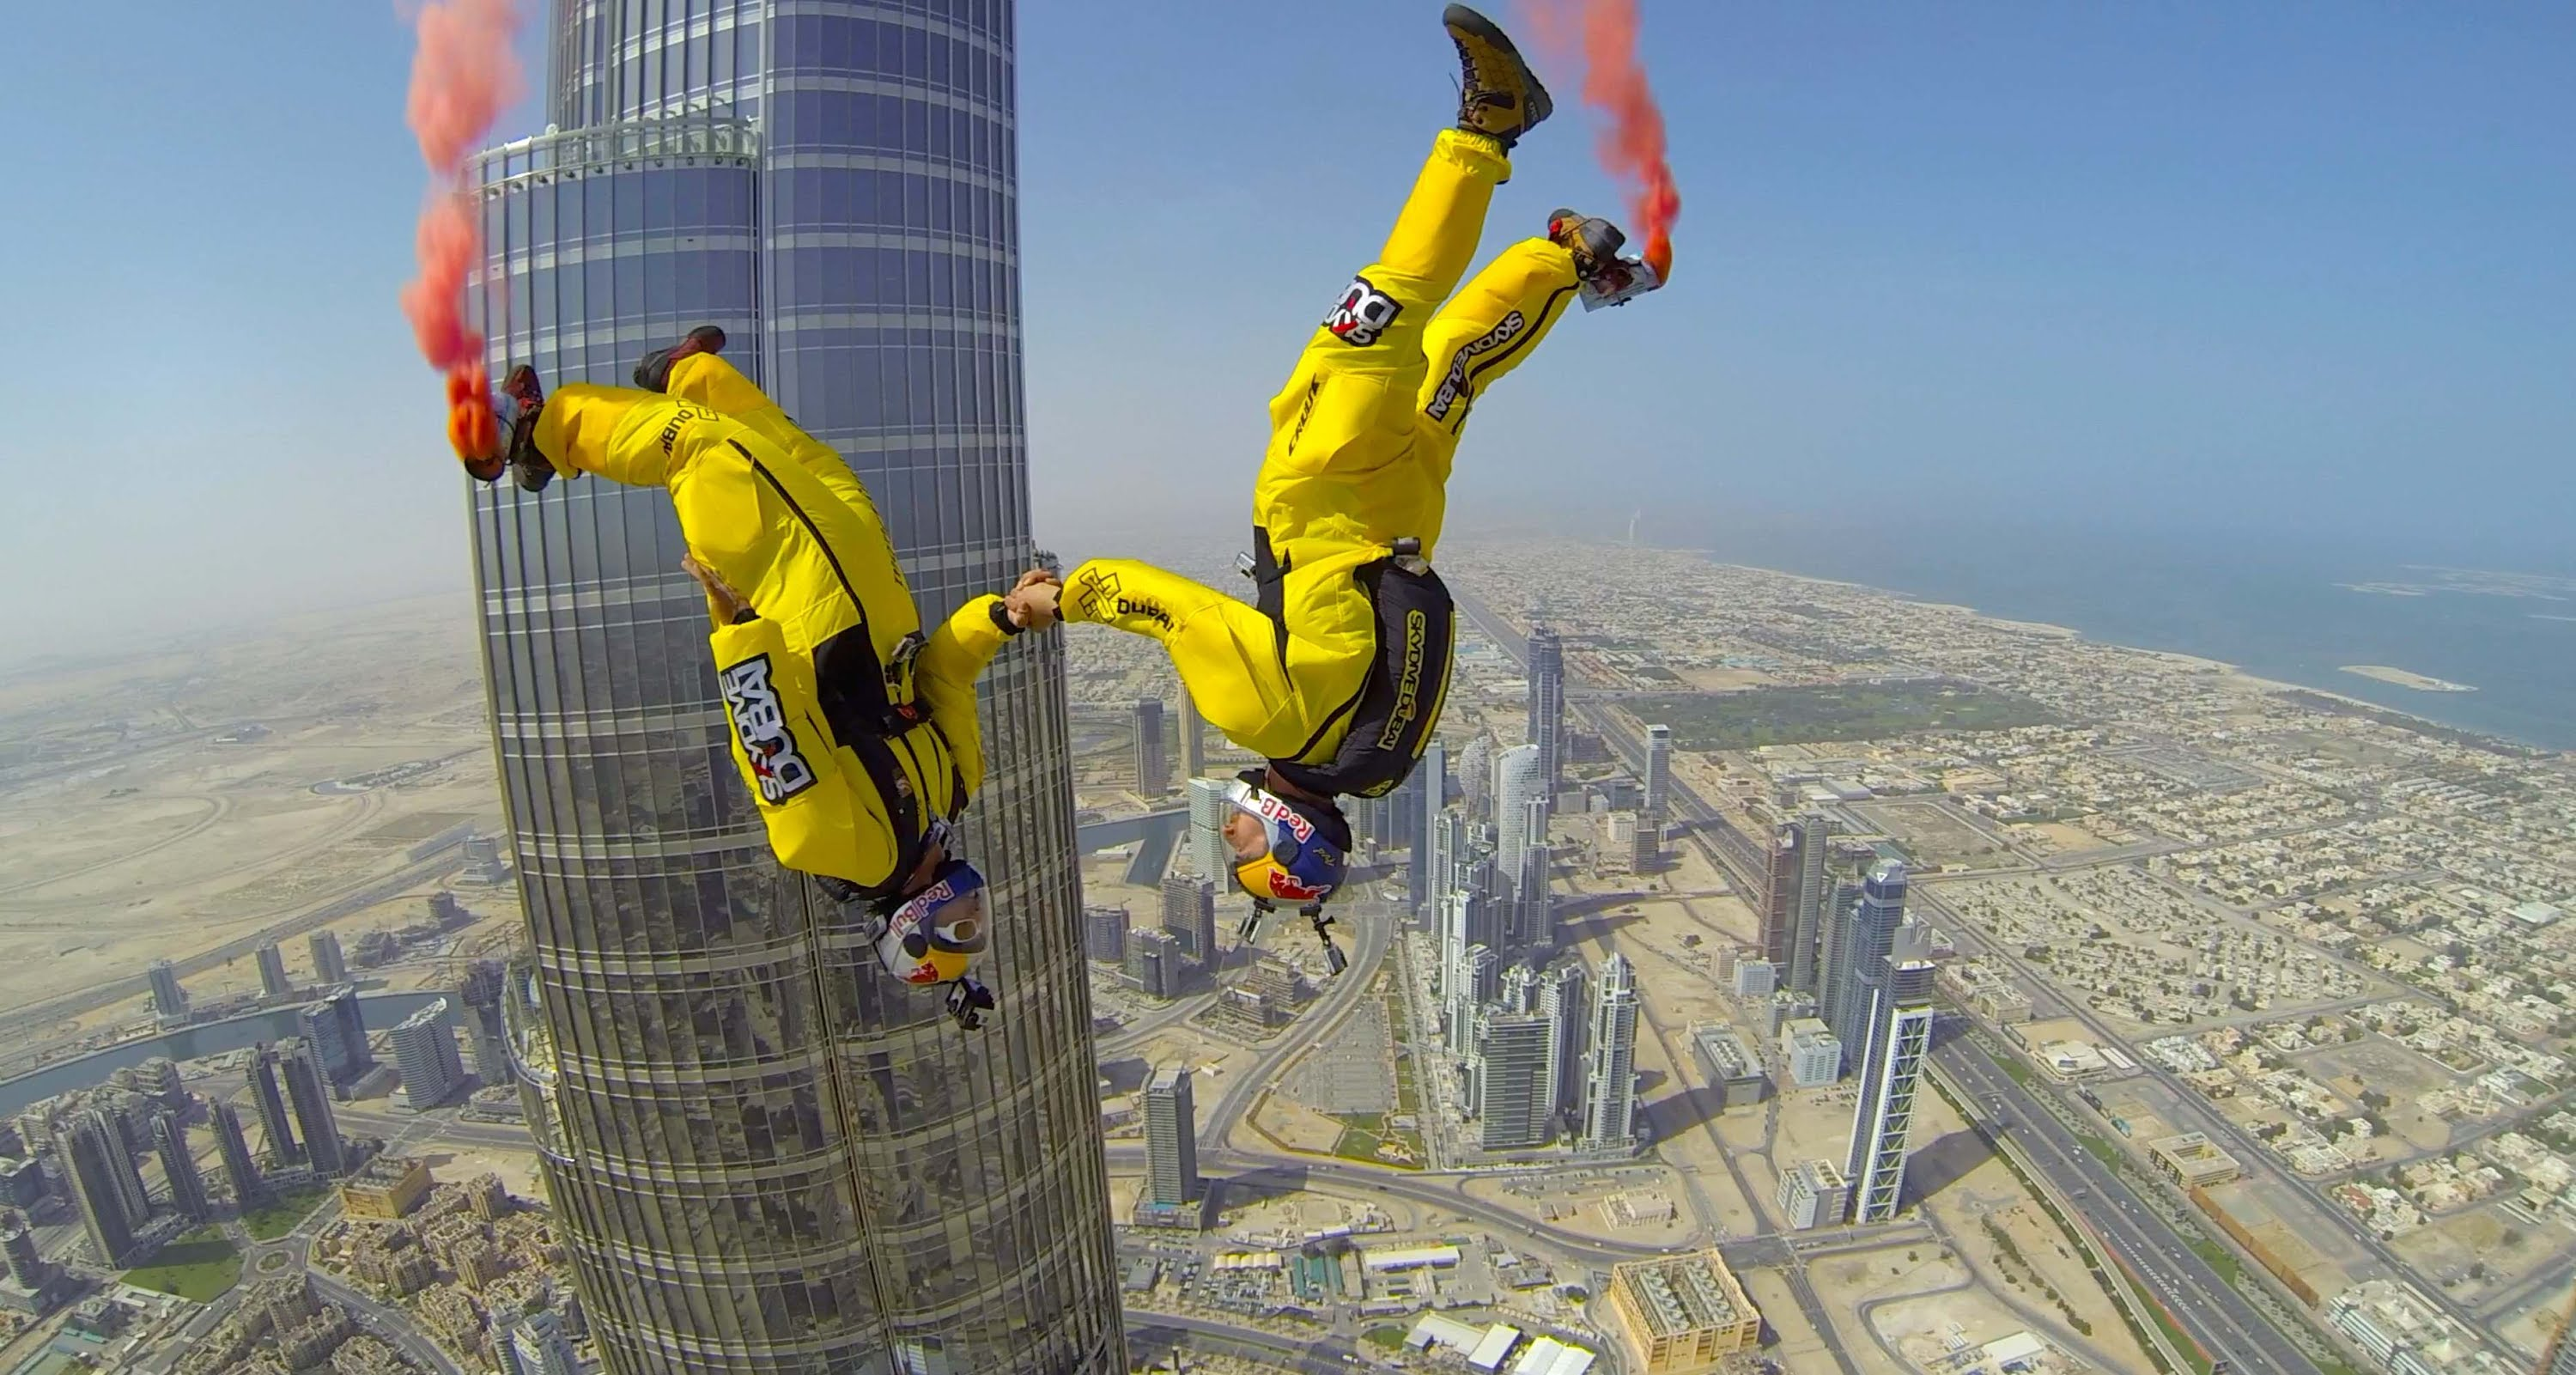 See What It Feels Like To Jump Off The Tallest Building In The World… The Burj Khalifa